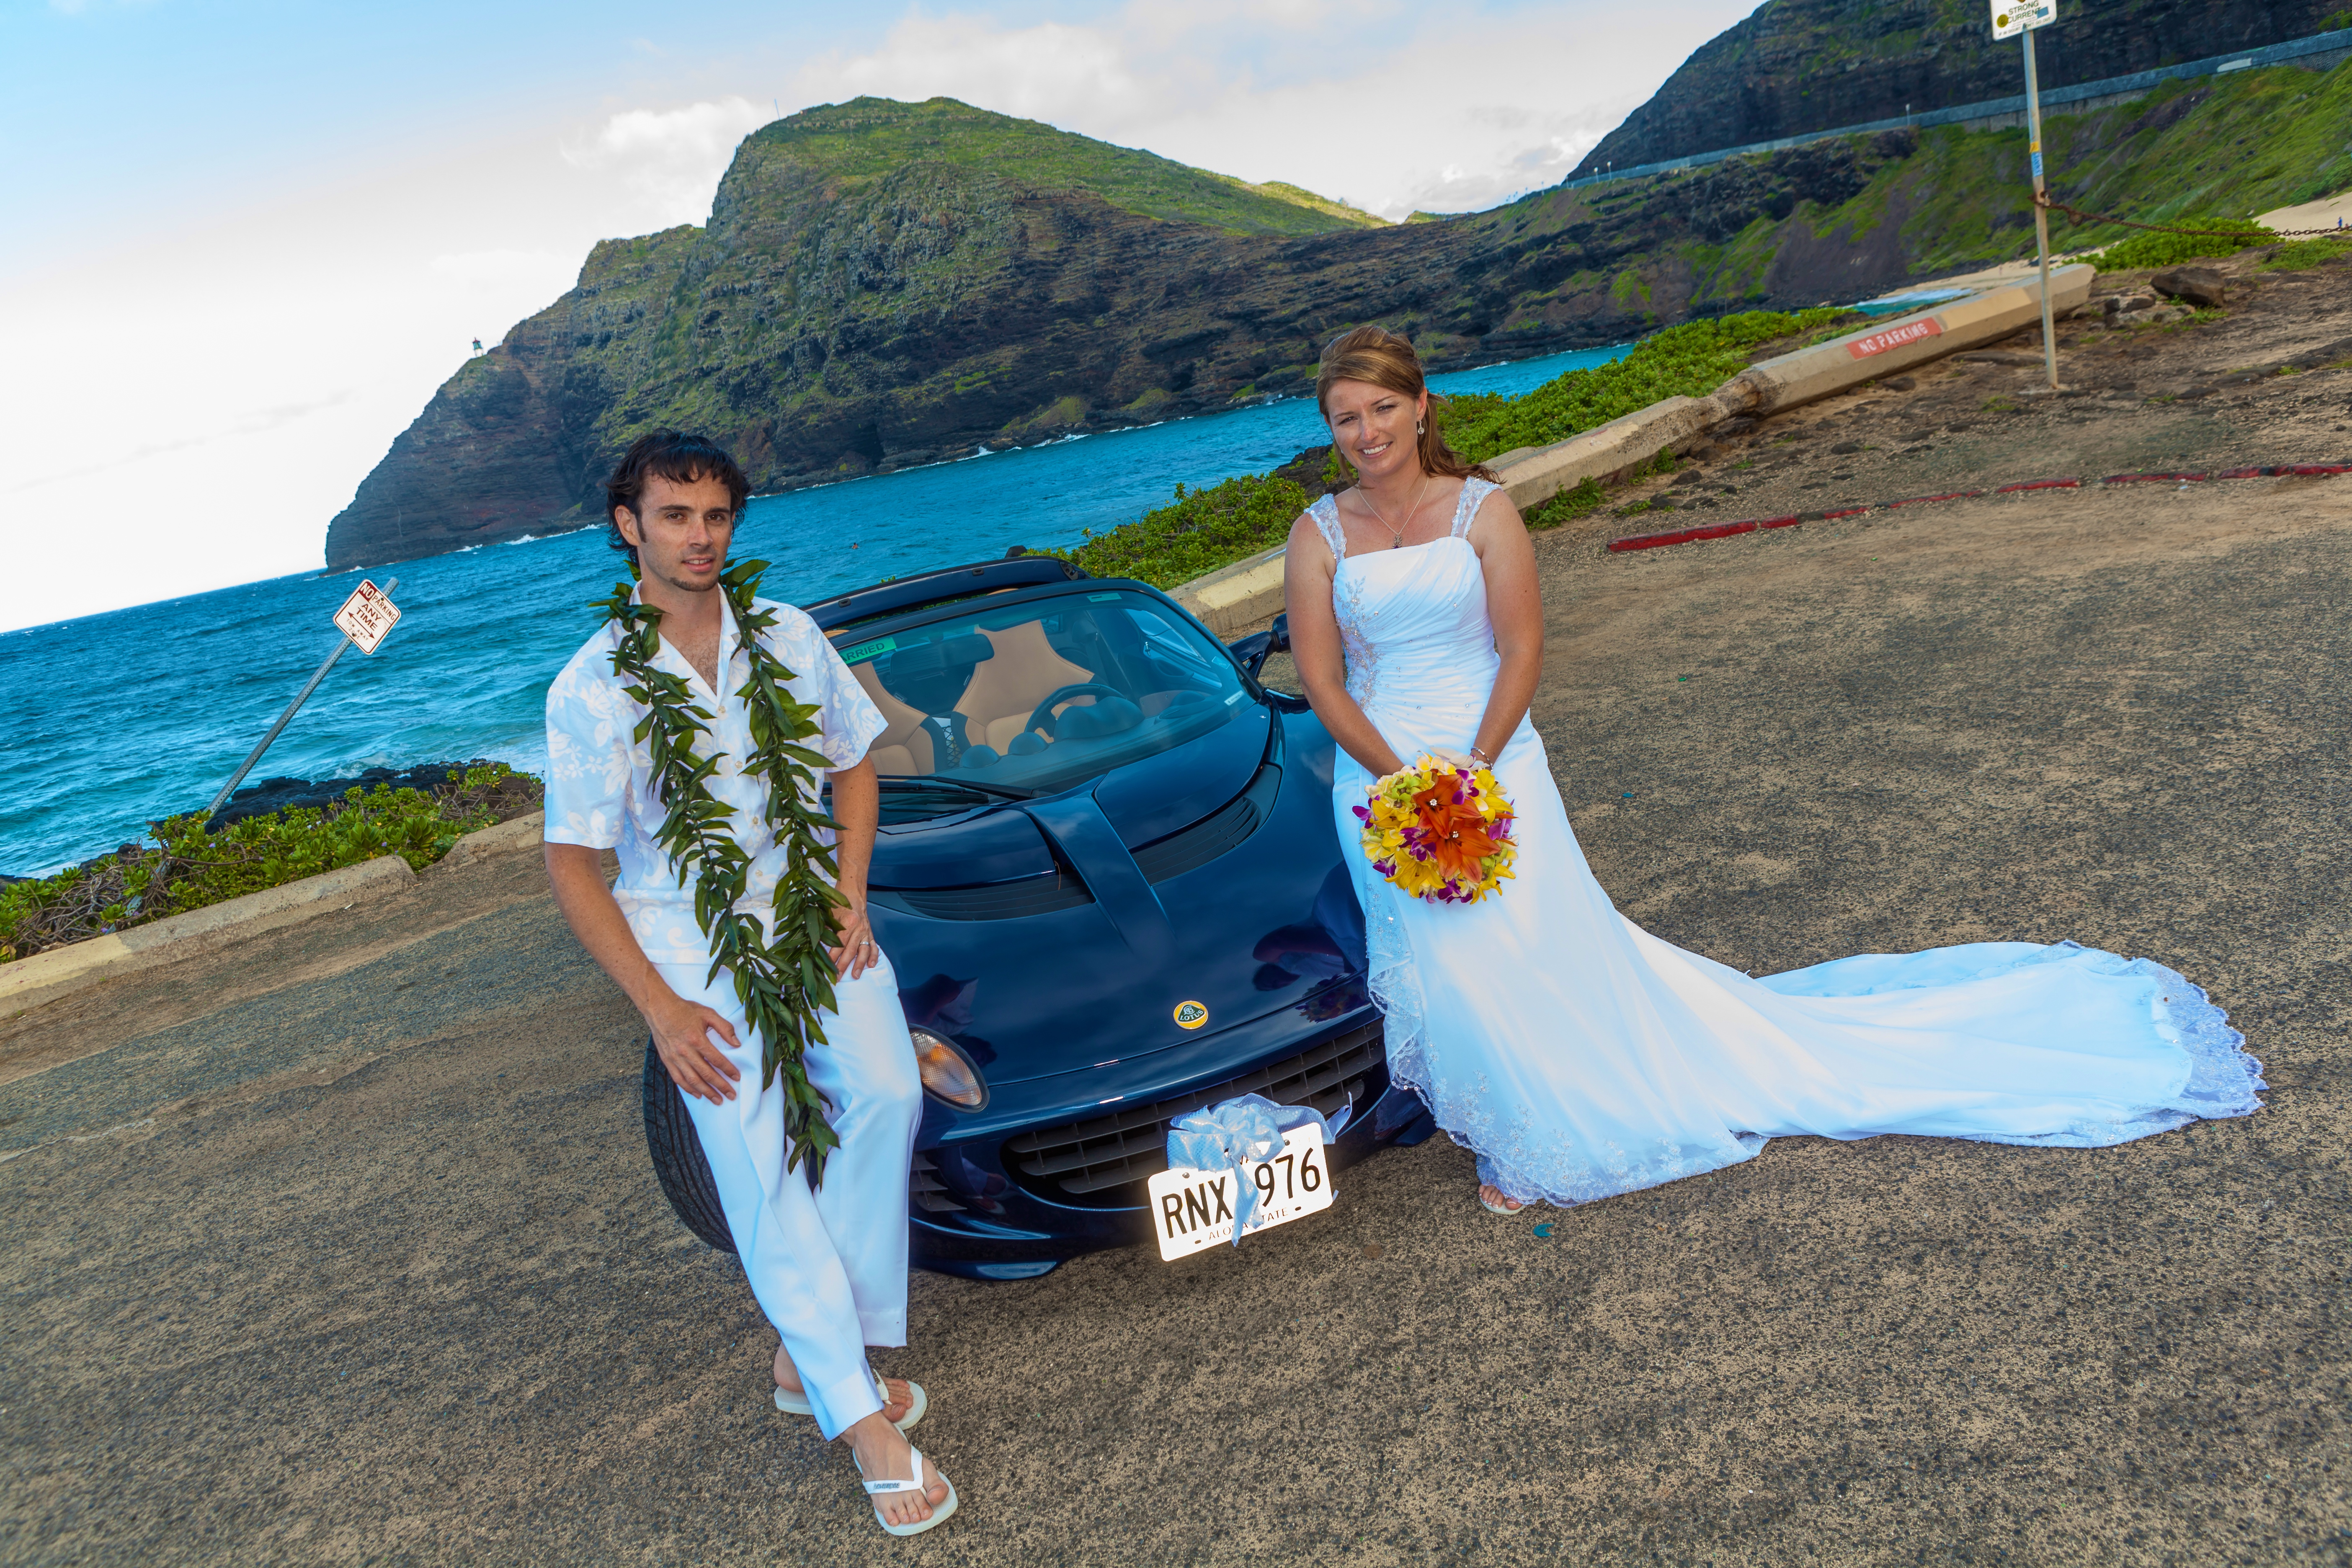 alohaislandweddings- Lotus car -20